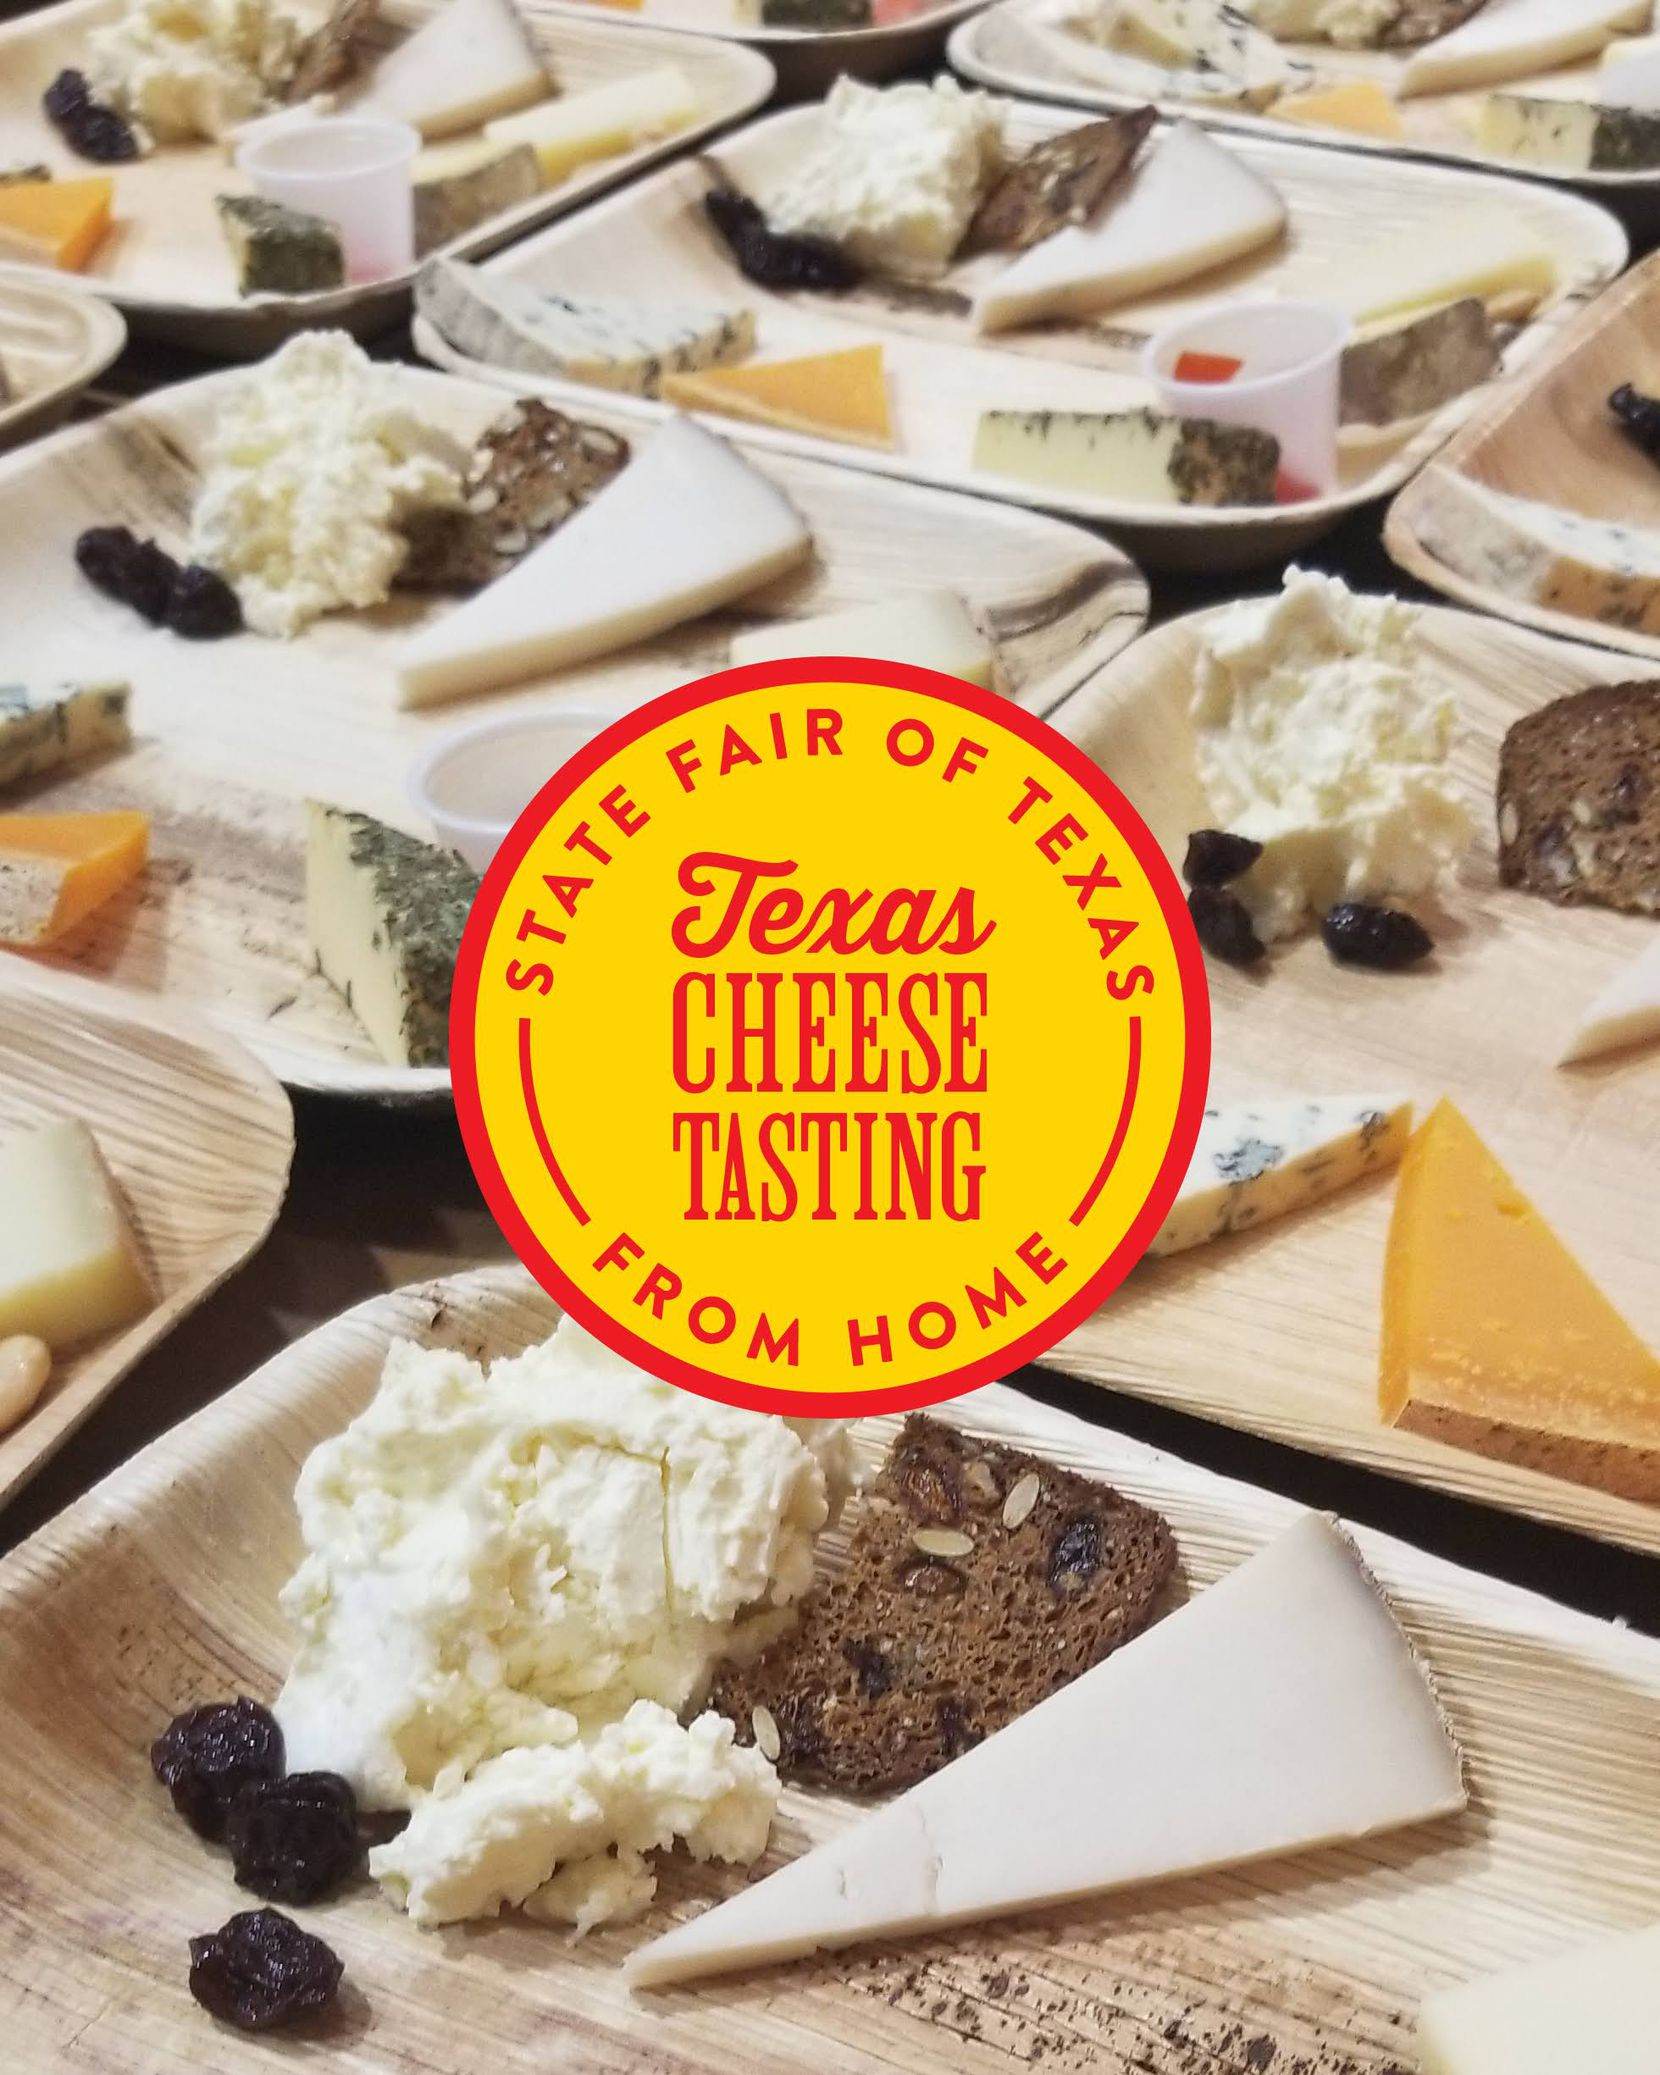 The fair has partnered with Scardello Artisan Cheese to offer two tastings of Texas cheeses.